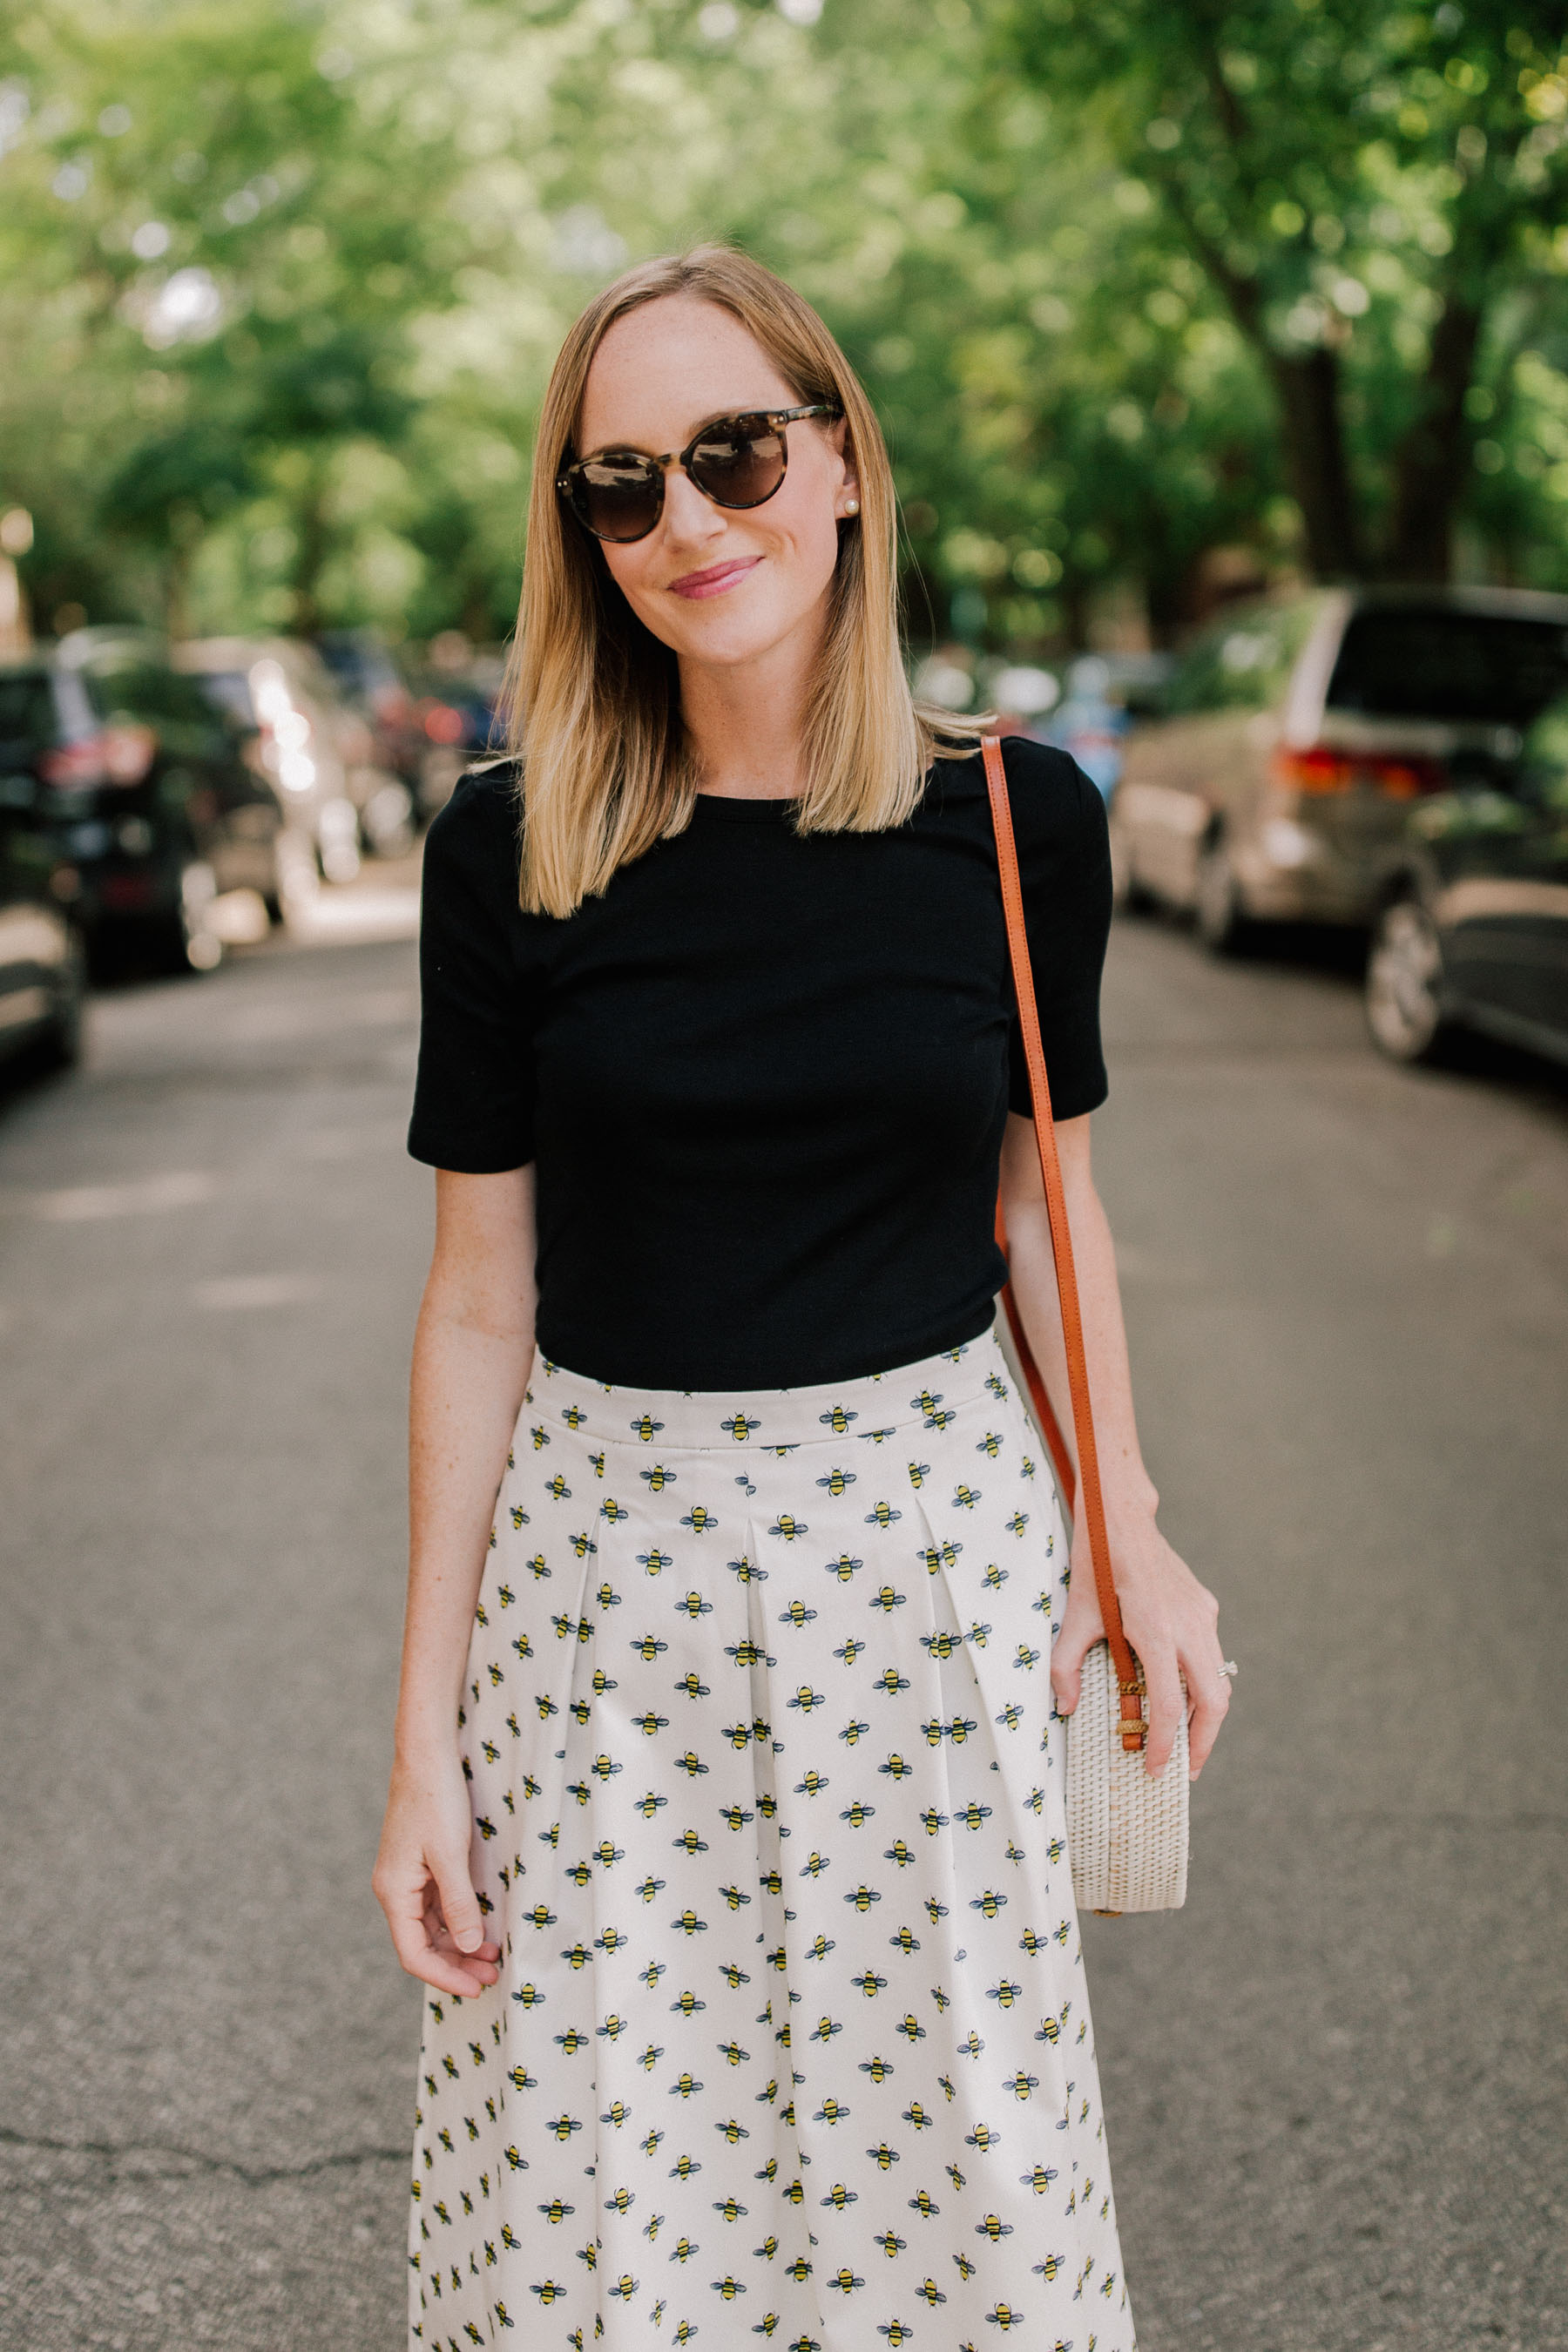 Bee Skirt(Also available at Boden.) / Perfect Tee / woven bag - Kelly in the City